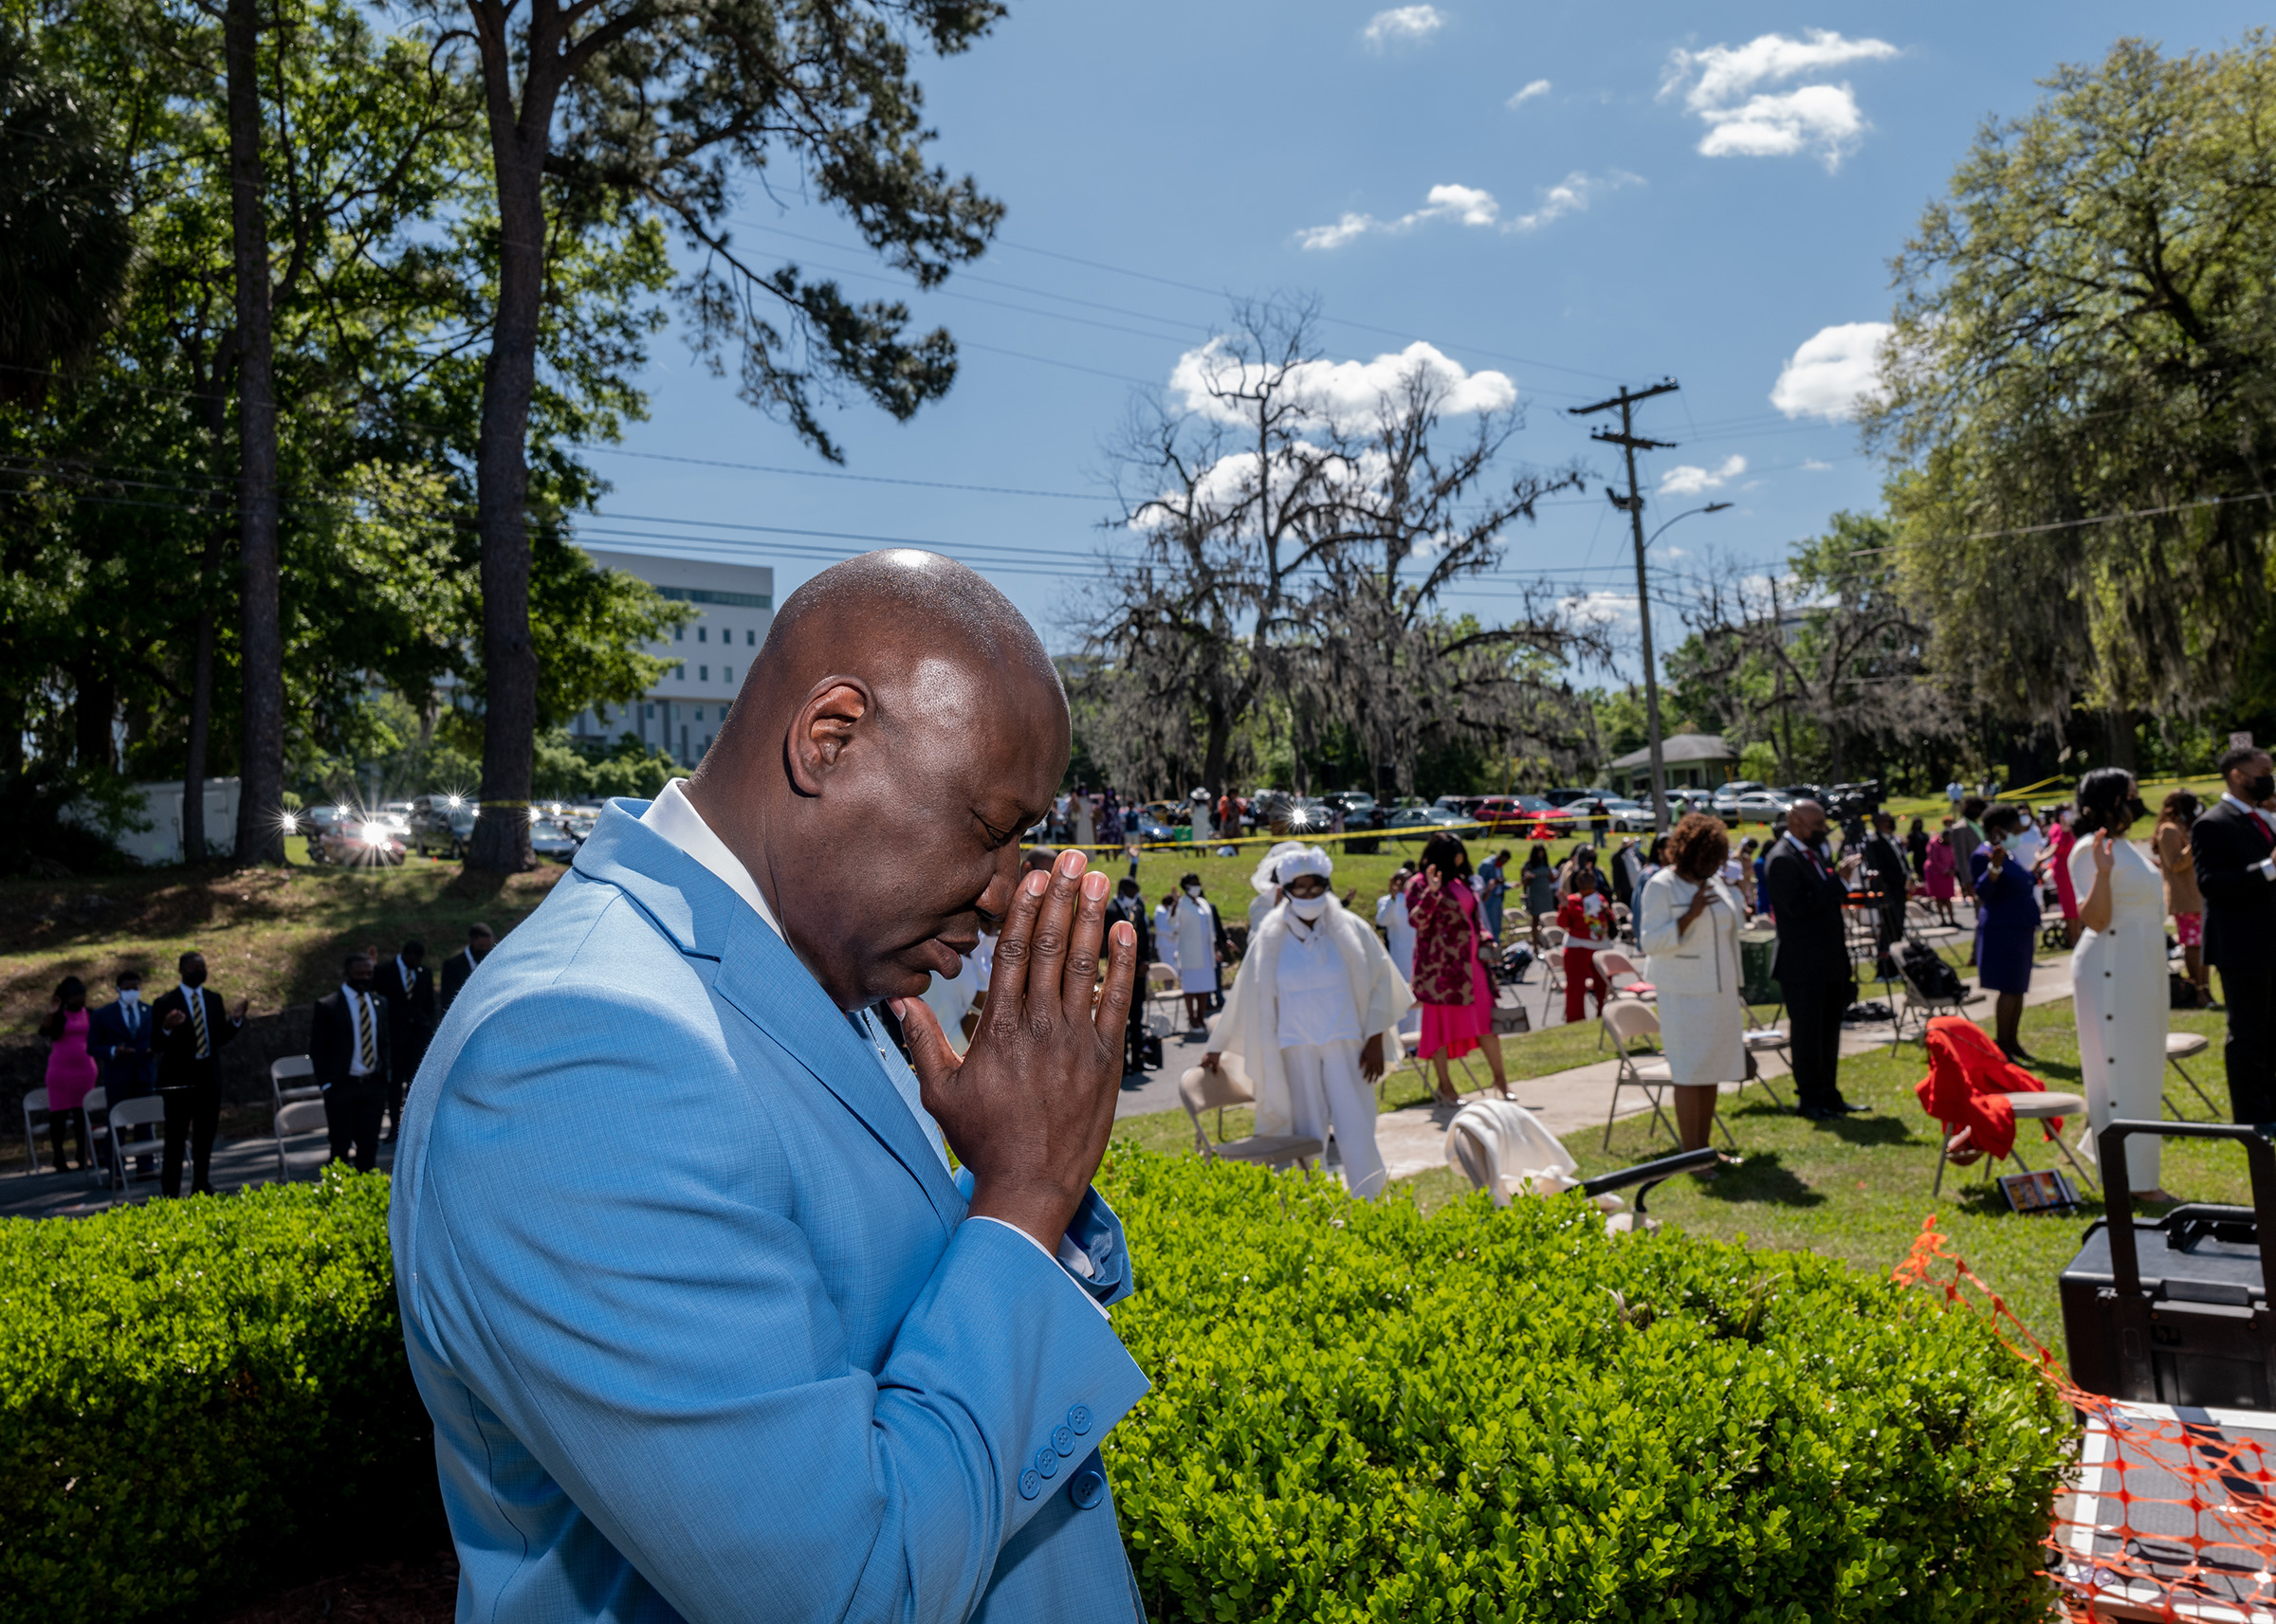 Crump attends Easter Sunday Mass at Bethel Missionary Baptist Church in Tallahassee, Fla., on April 4.